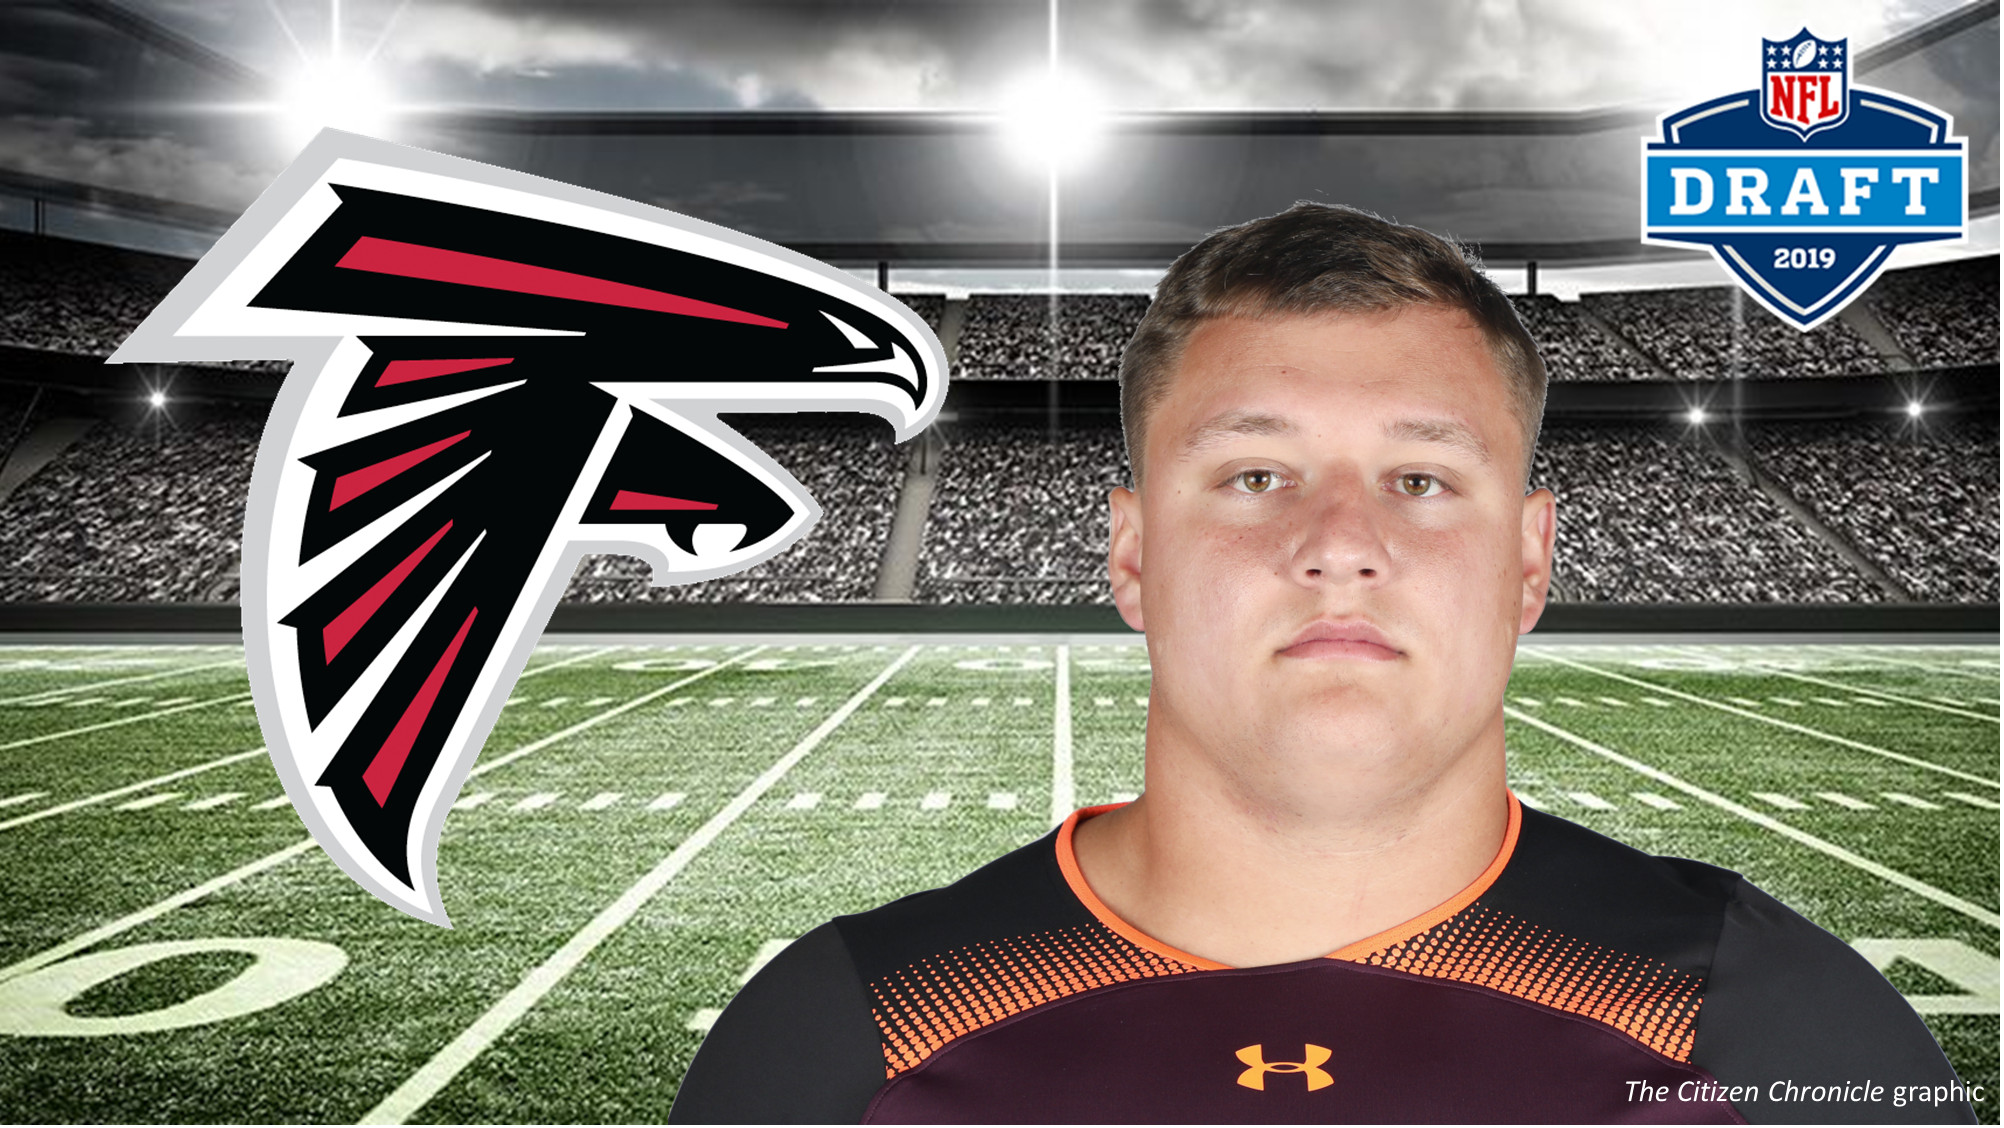 Falcons draft Lindstrom in 1st round